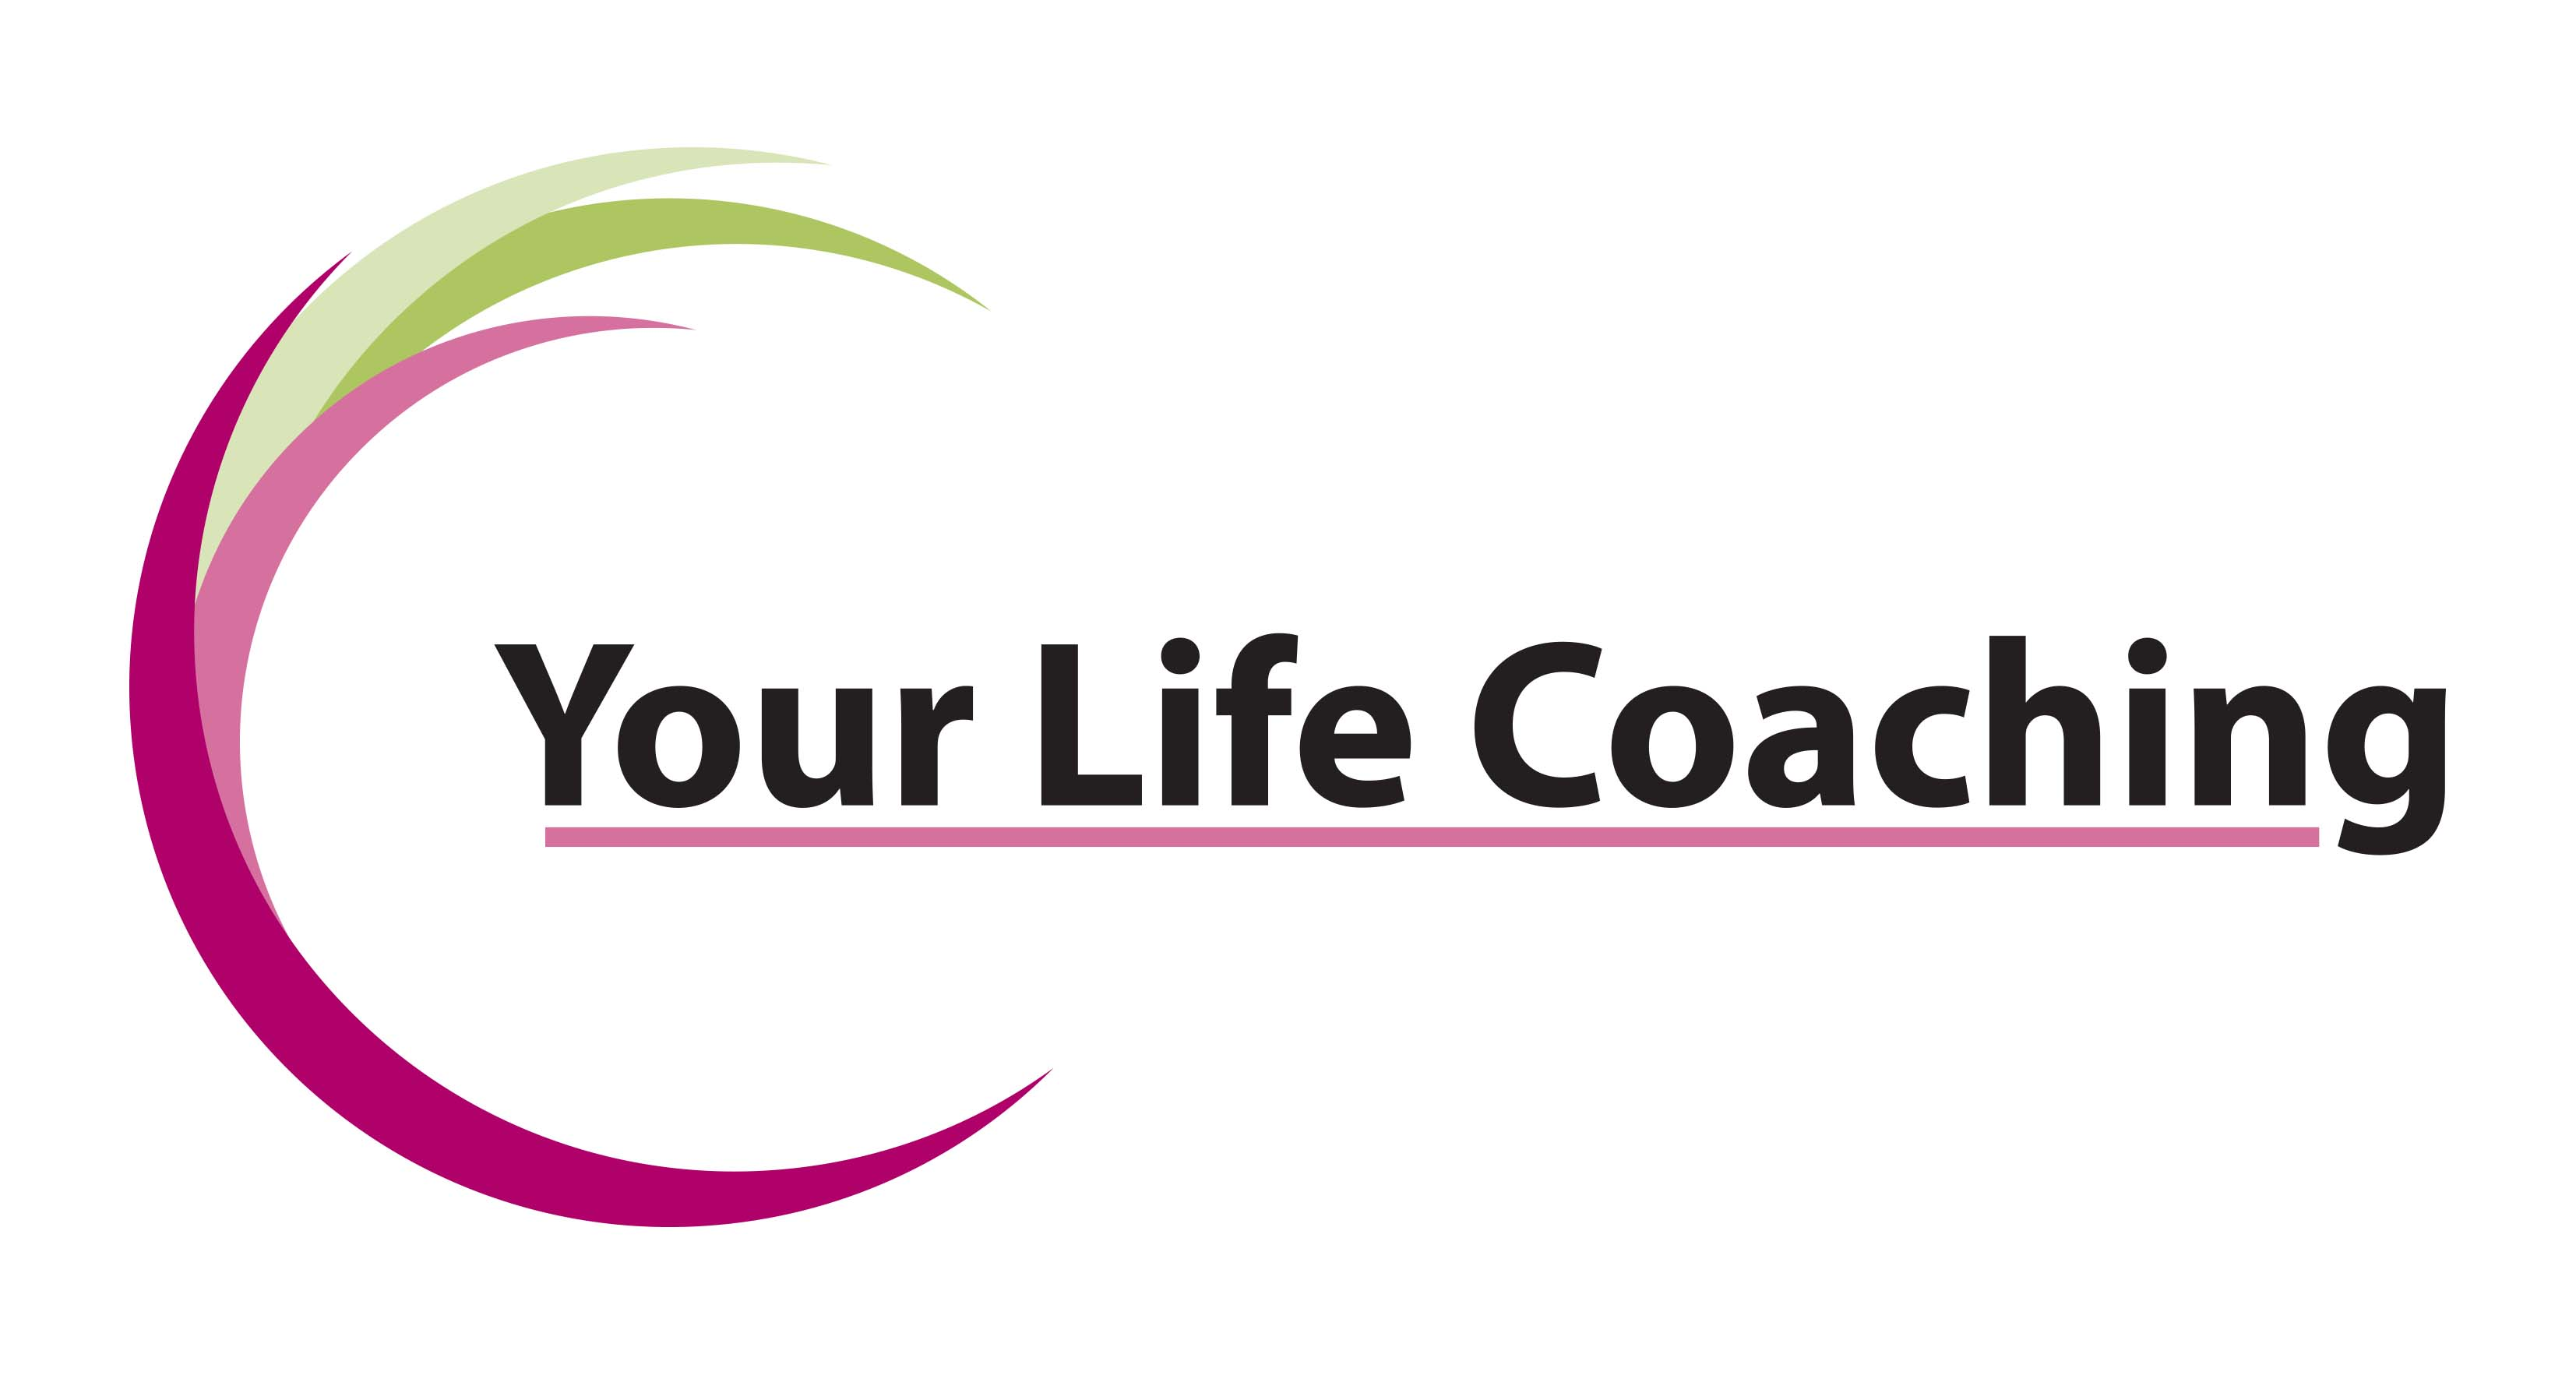 Your Life Coaching - Marca de Greef @ LaSirel